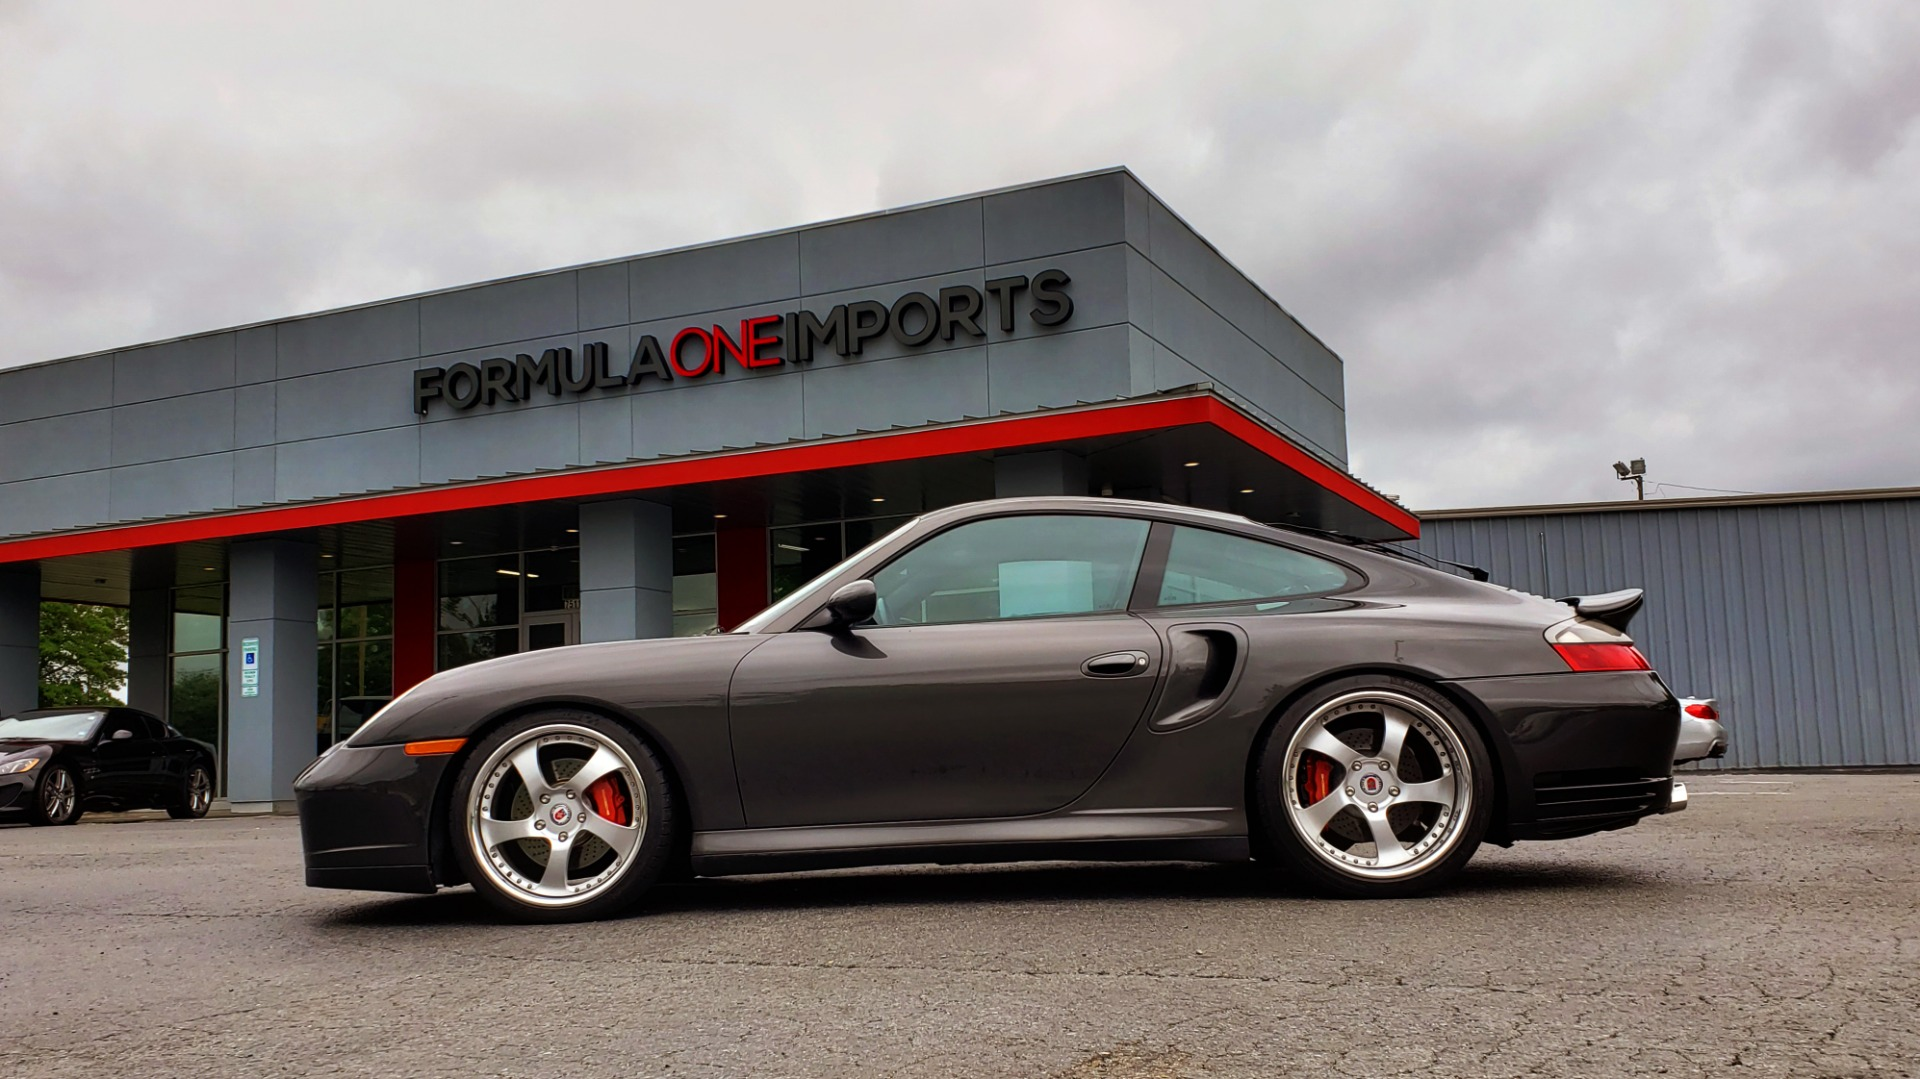 Used 2002 Porsche 911 CARRERA TURBO / 6-SPD MAN / ALPINE / BOSE / PERF UPGRADES for sale $53,995 at Formula Imports in Charlotte NC 28227 81